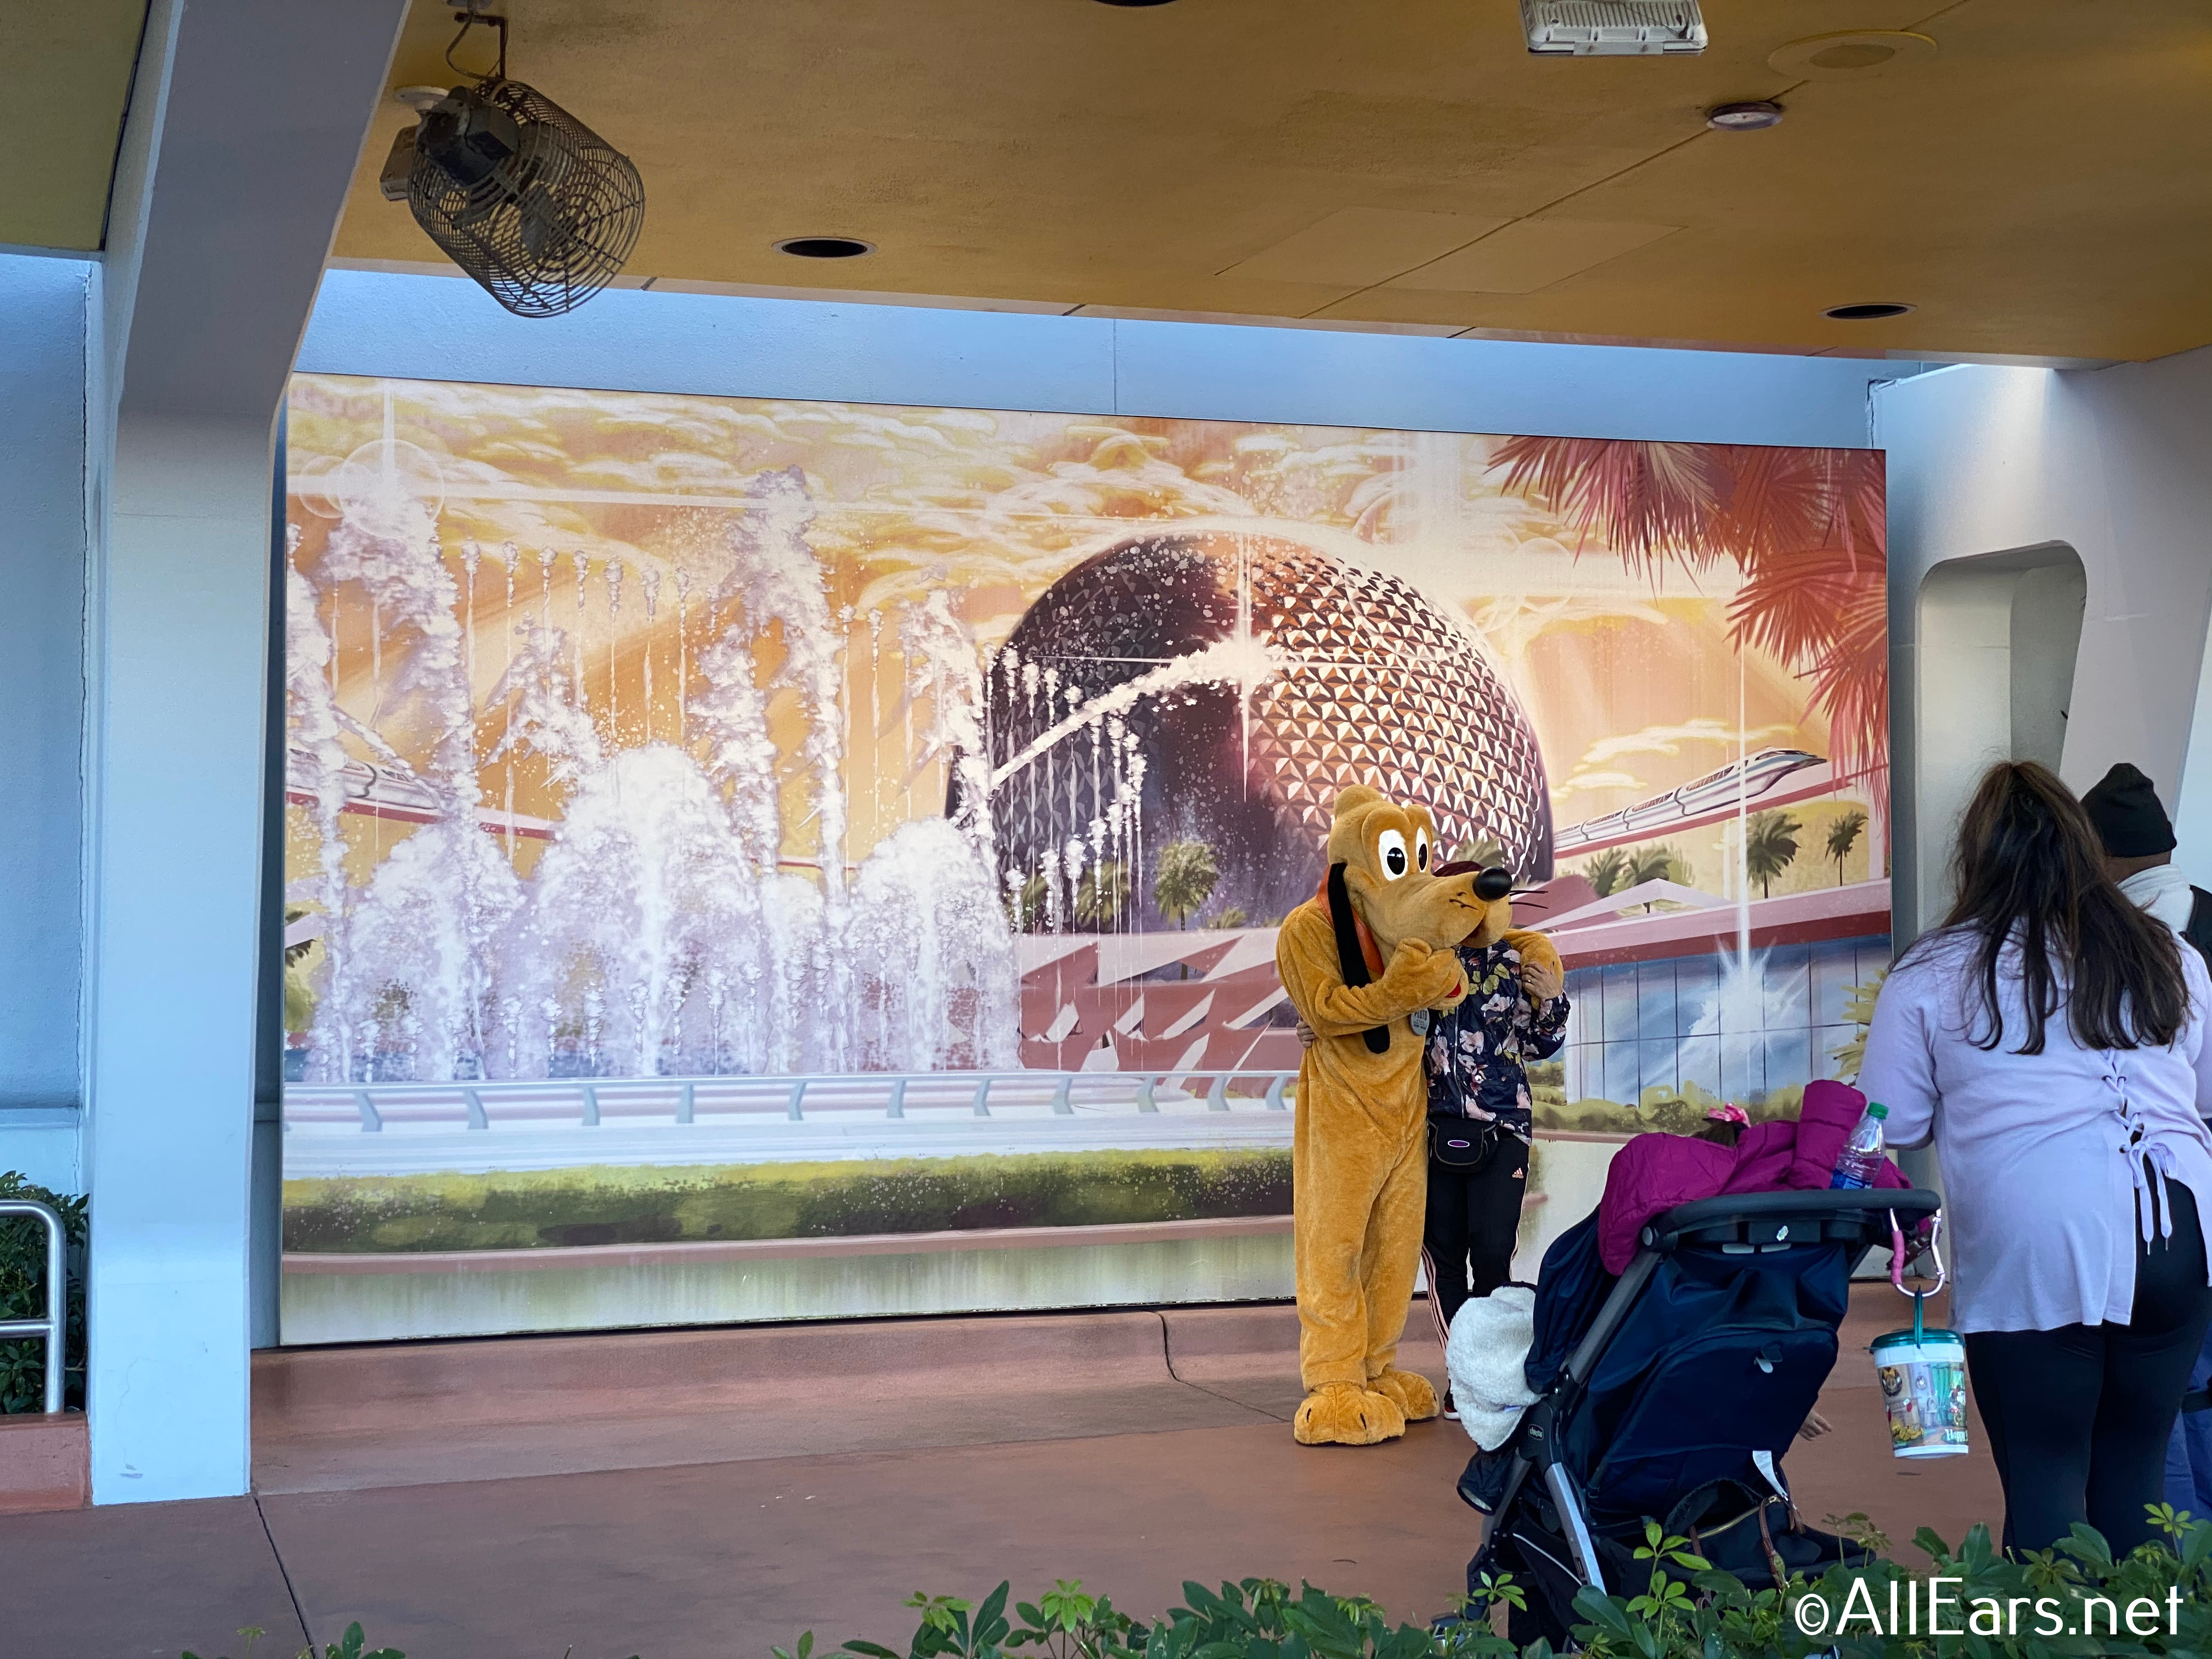 Pluto meeting at Epcot's front entrance